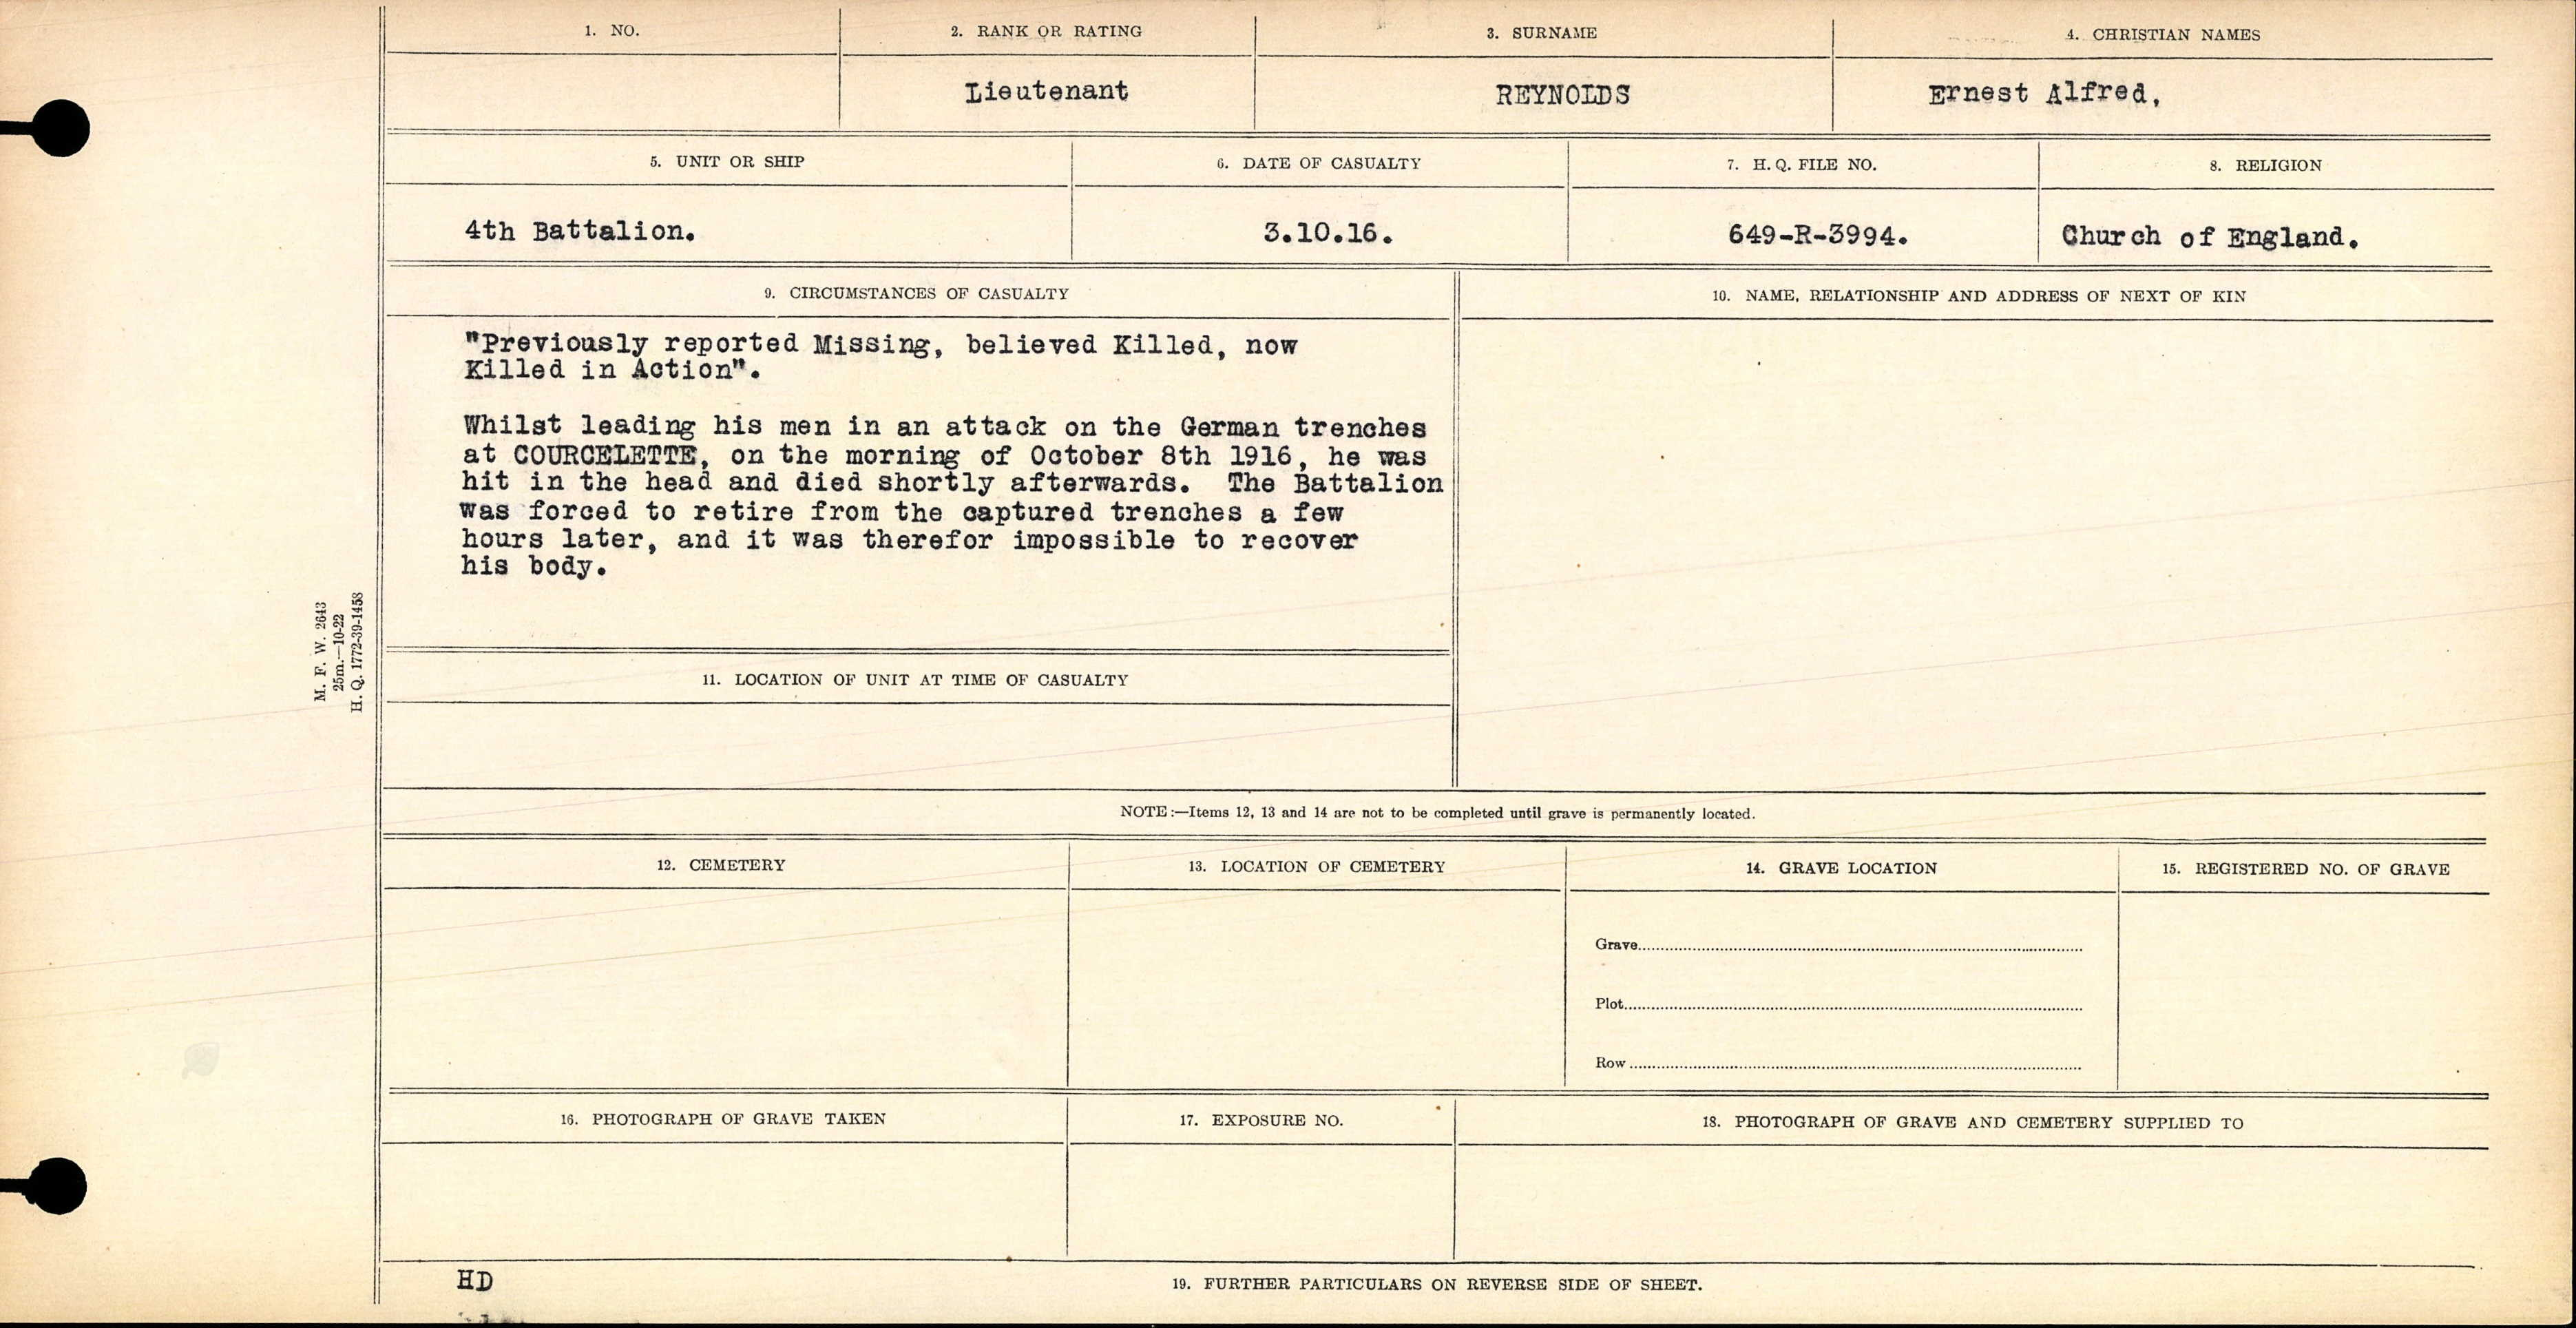 Death Registry– Circumstance of Death file for Lieutenant Ernest Alfred Reynolds reporting his death on October 8, 1916 during the attack on the German trenches at Courcelette, France. You will note the Date of Casualty is reported as October 3, 1916 but the text says October 8, 1916. The War Diary of the 4th Canadian Infantry Battalion confirms that the 4th Battalion was at Courcelette on October 8, 1916 but in their billets at Contay, France on October 3, 1916. A correction notice has been sent to the Commonwealth War Graves Commission.